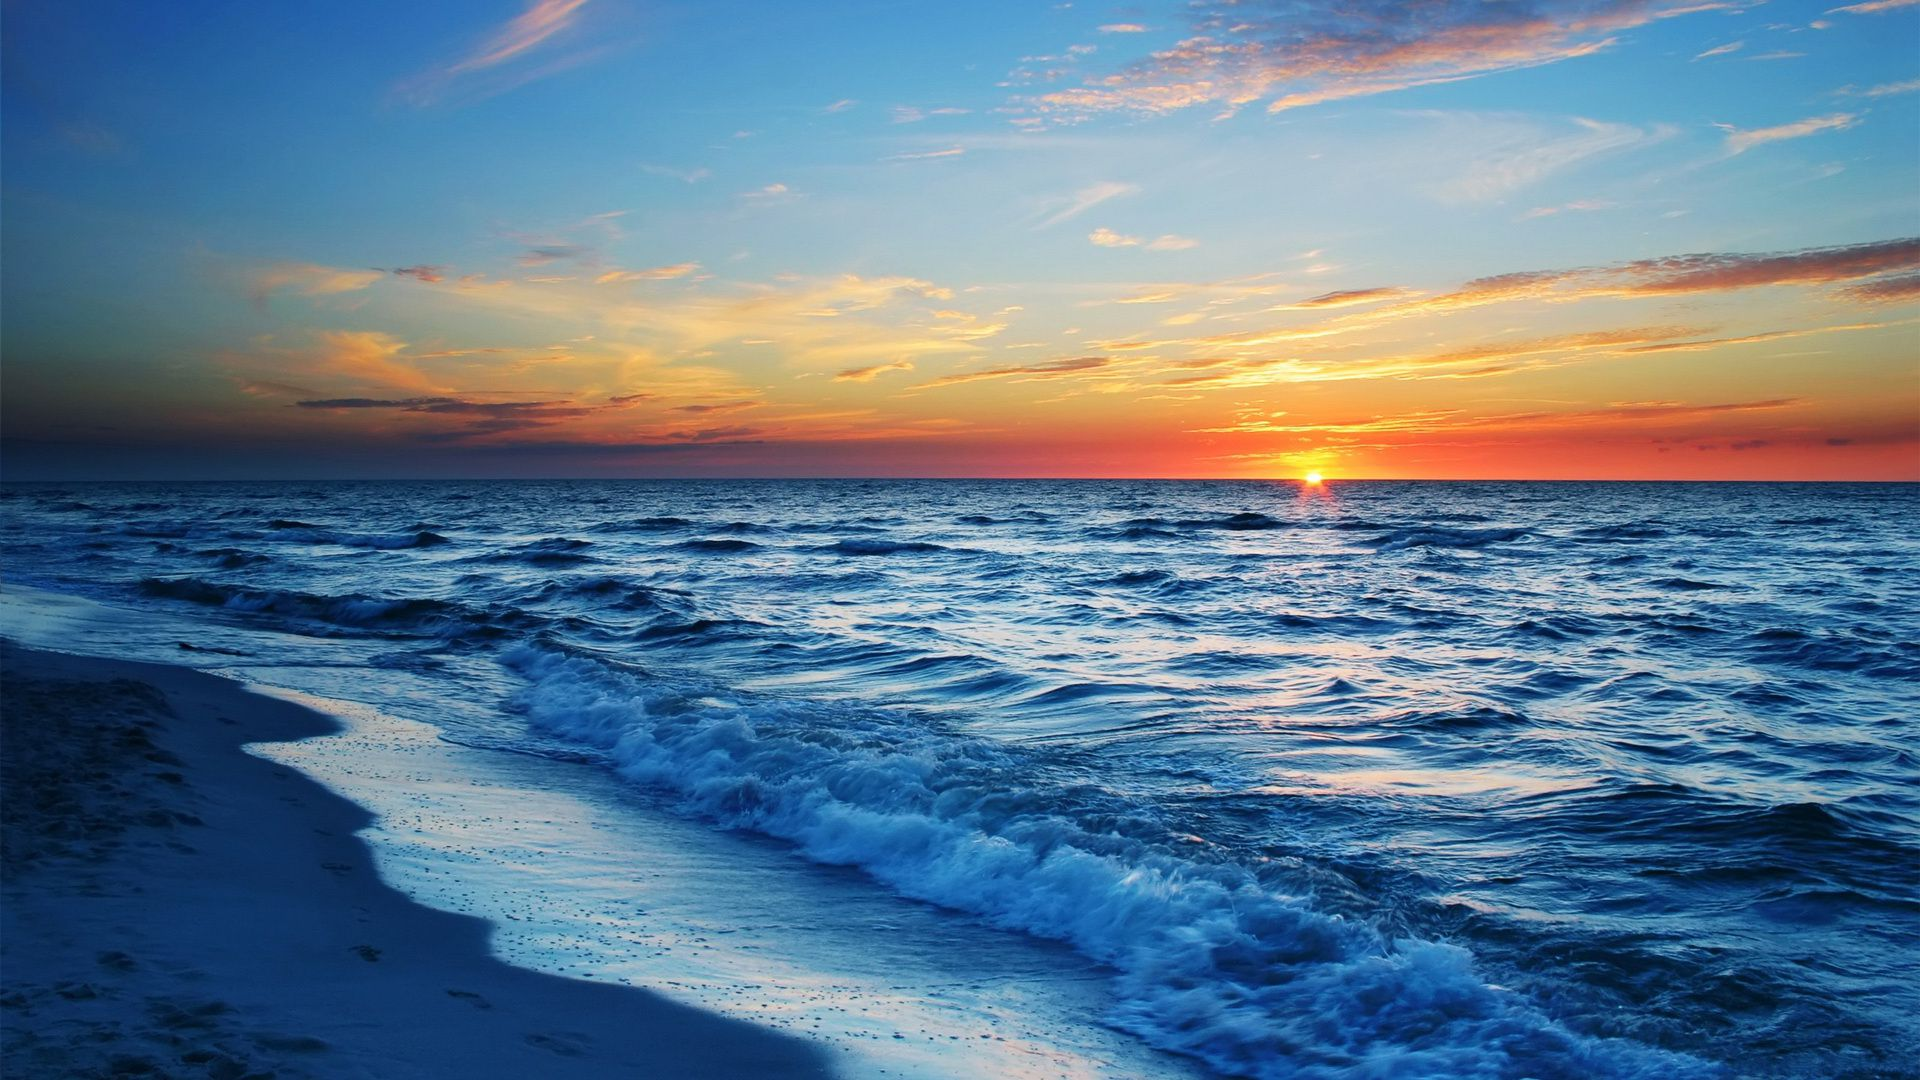 live ocean wallpaper for android which is under the ocean wallpapers 1920x1080